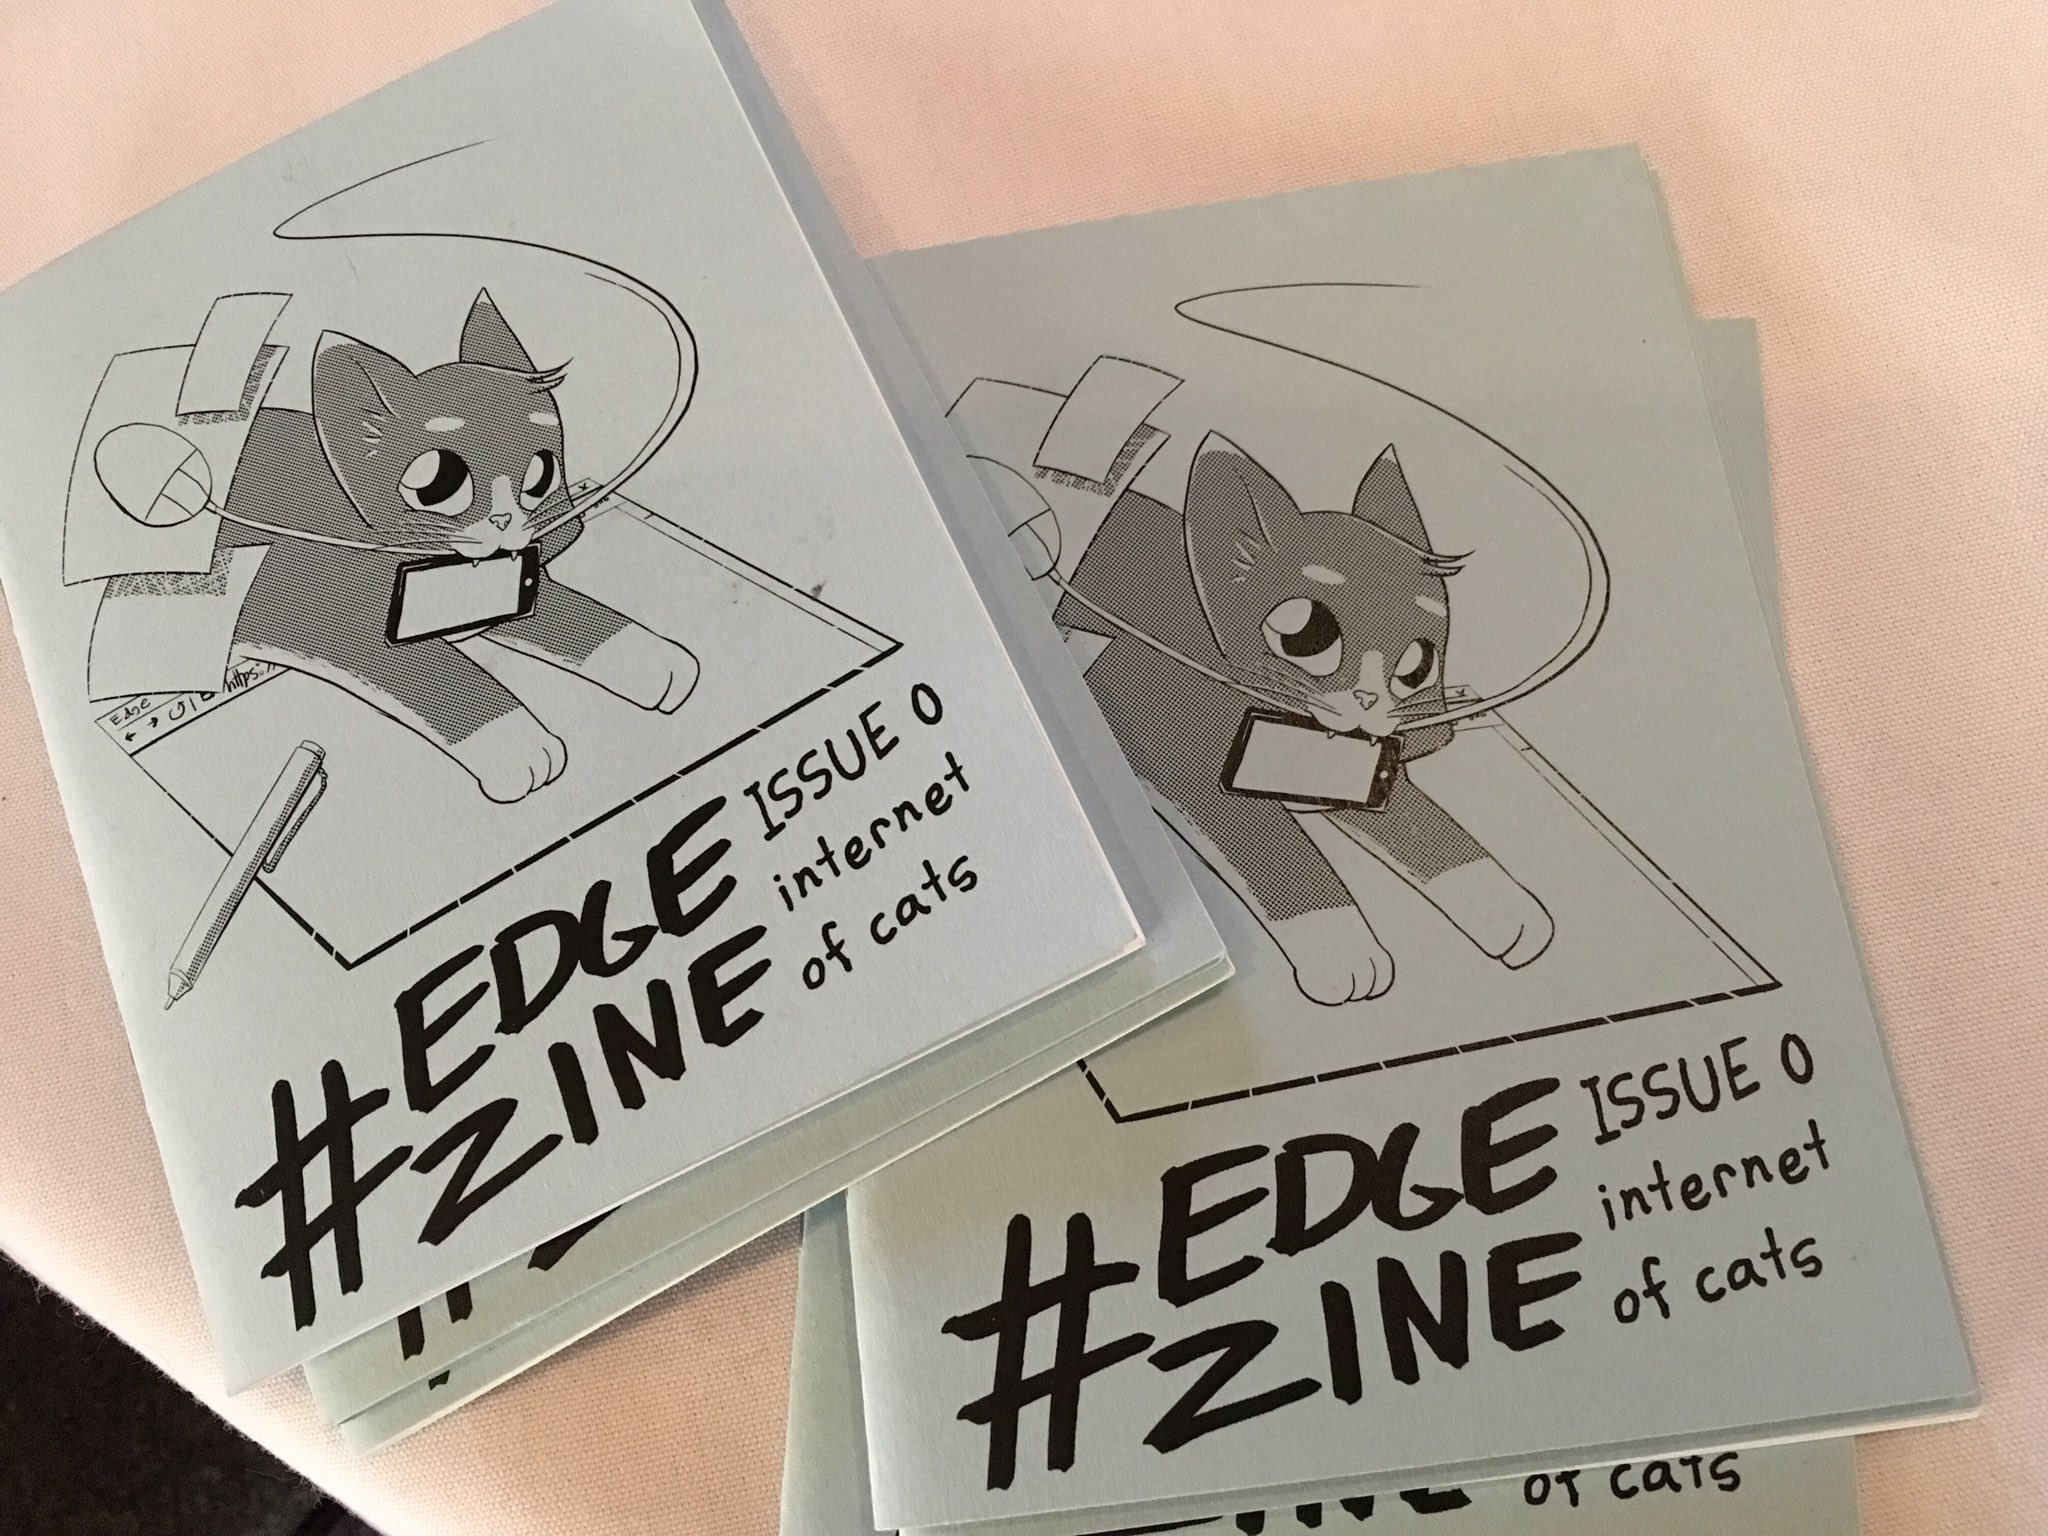 #respond17 I still have zines if anyone wants some! Come get 'em! https://t.co/SeqVOFc0xZ